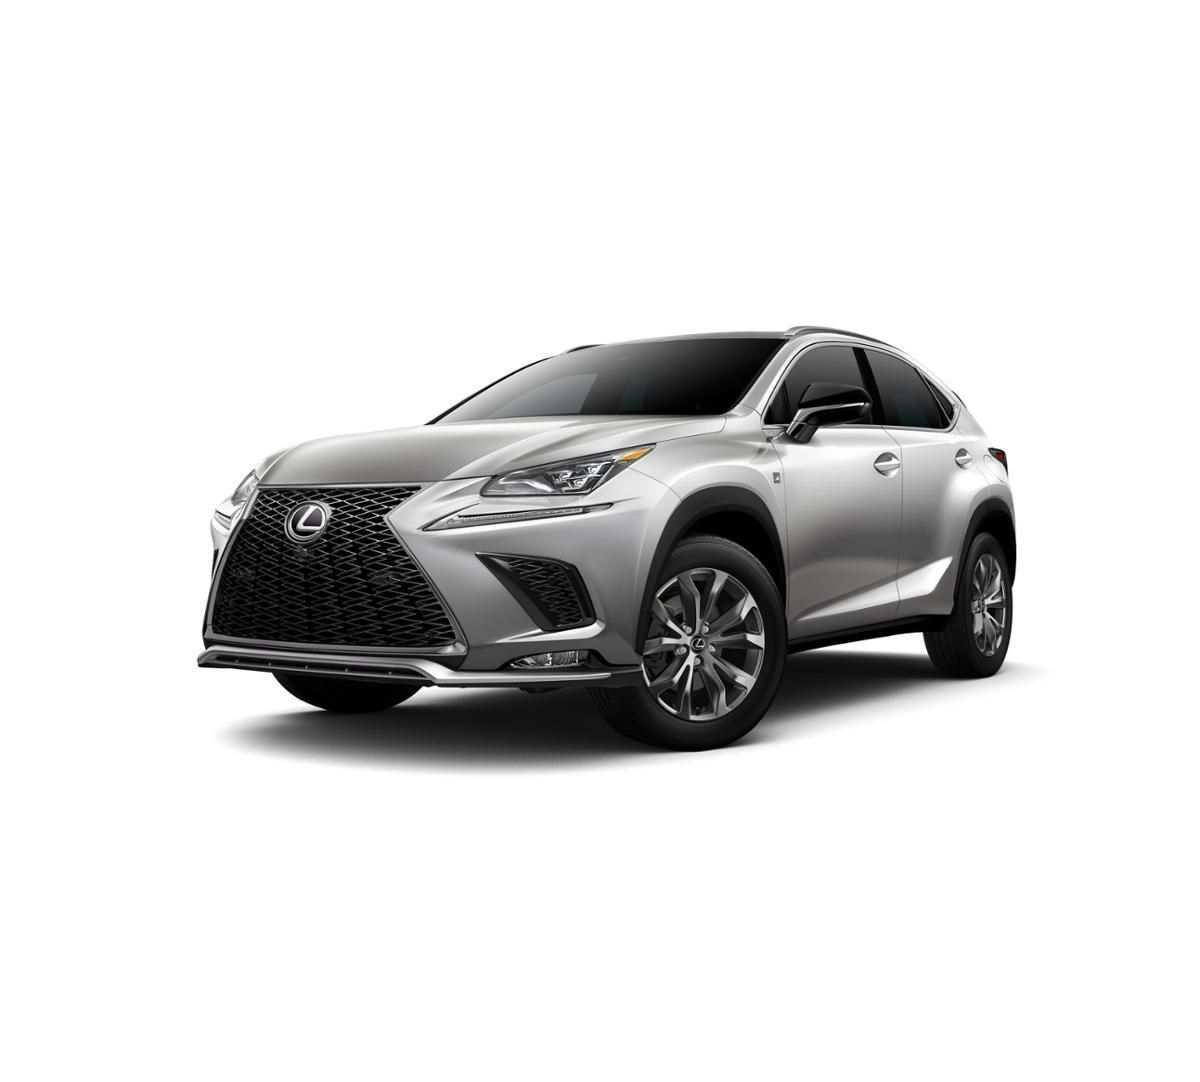 68 Concept of The Lexus 2019 Nx Price Redesign And Price Pricing for The Lexus 2019 Nx Price Redesign And Price